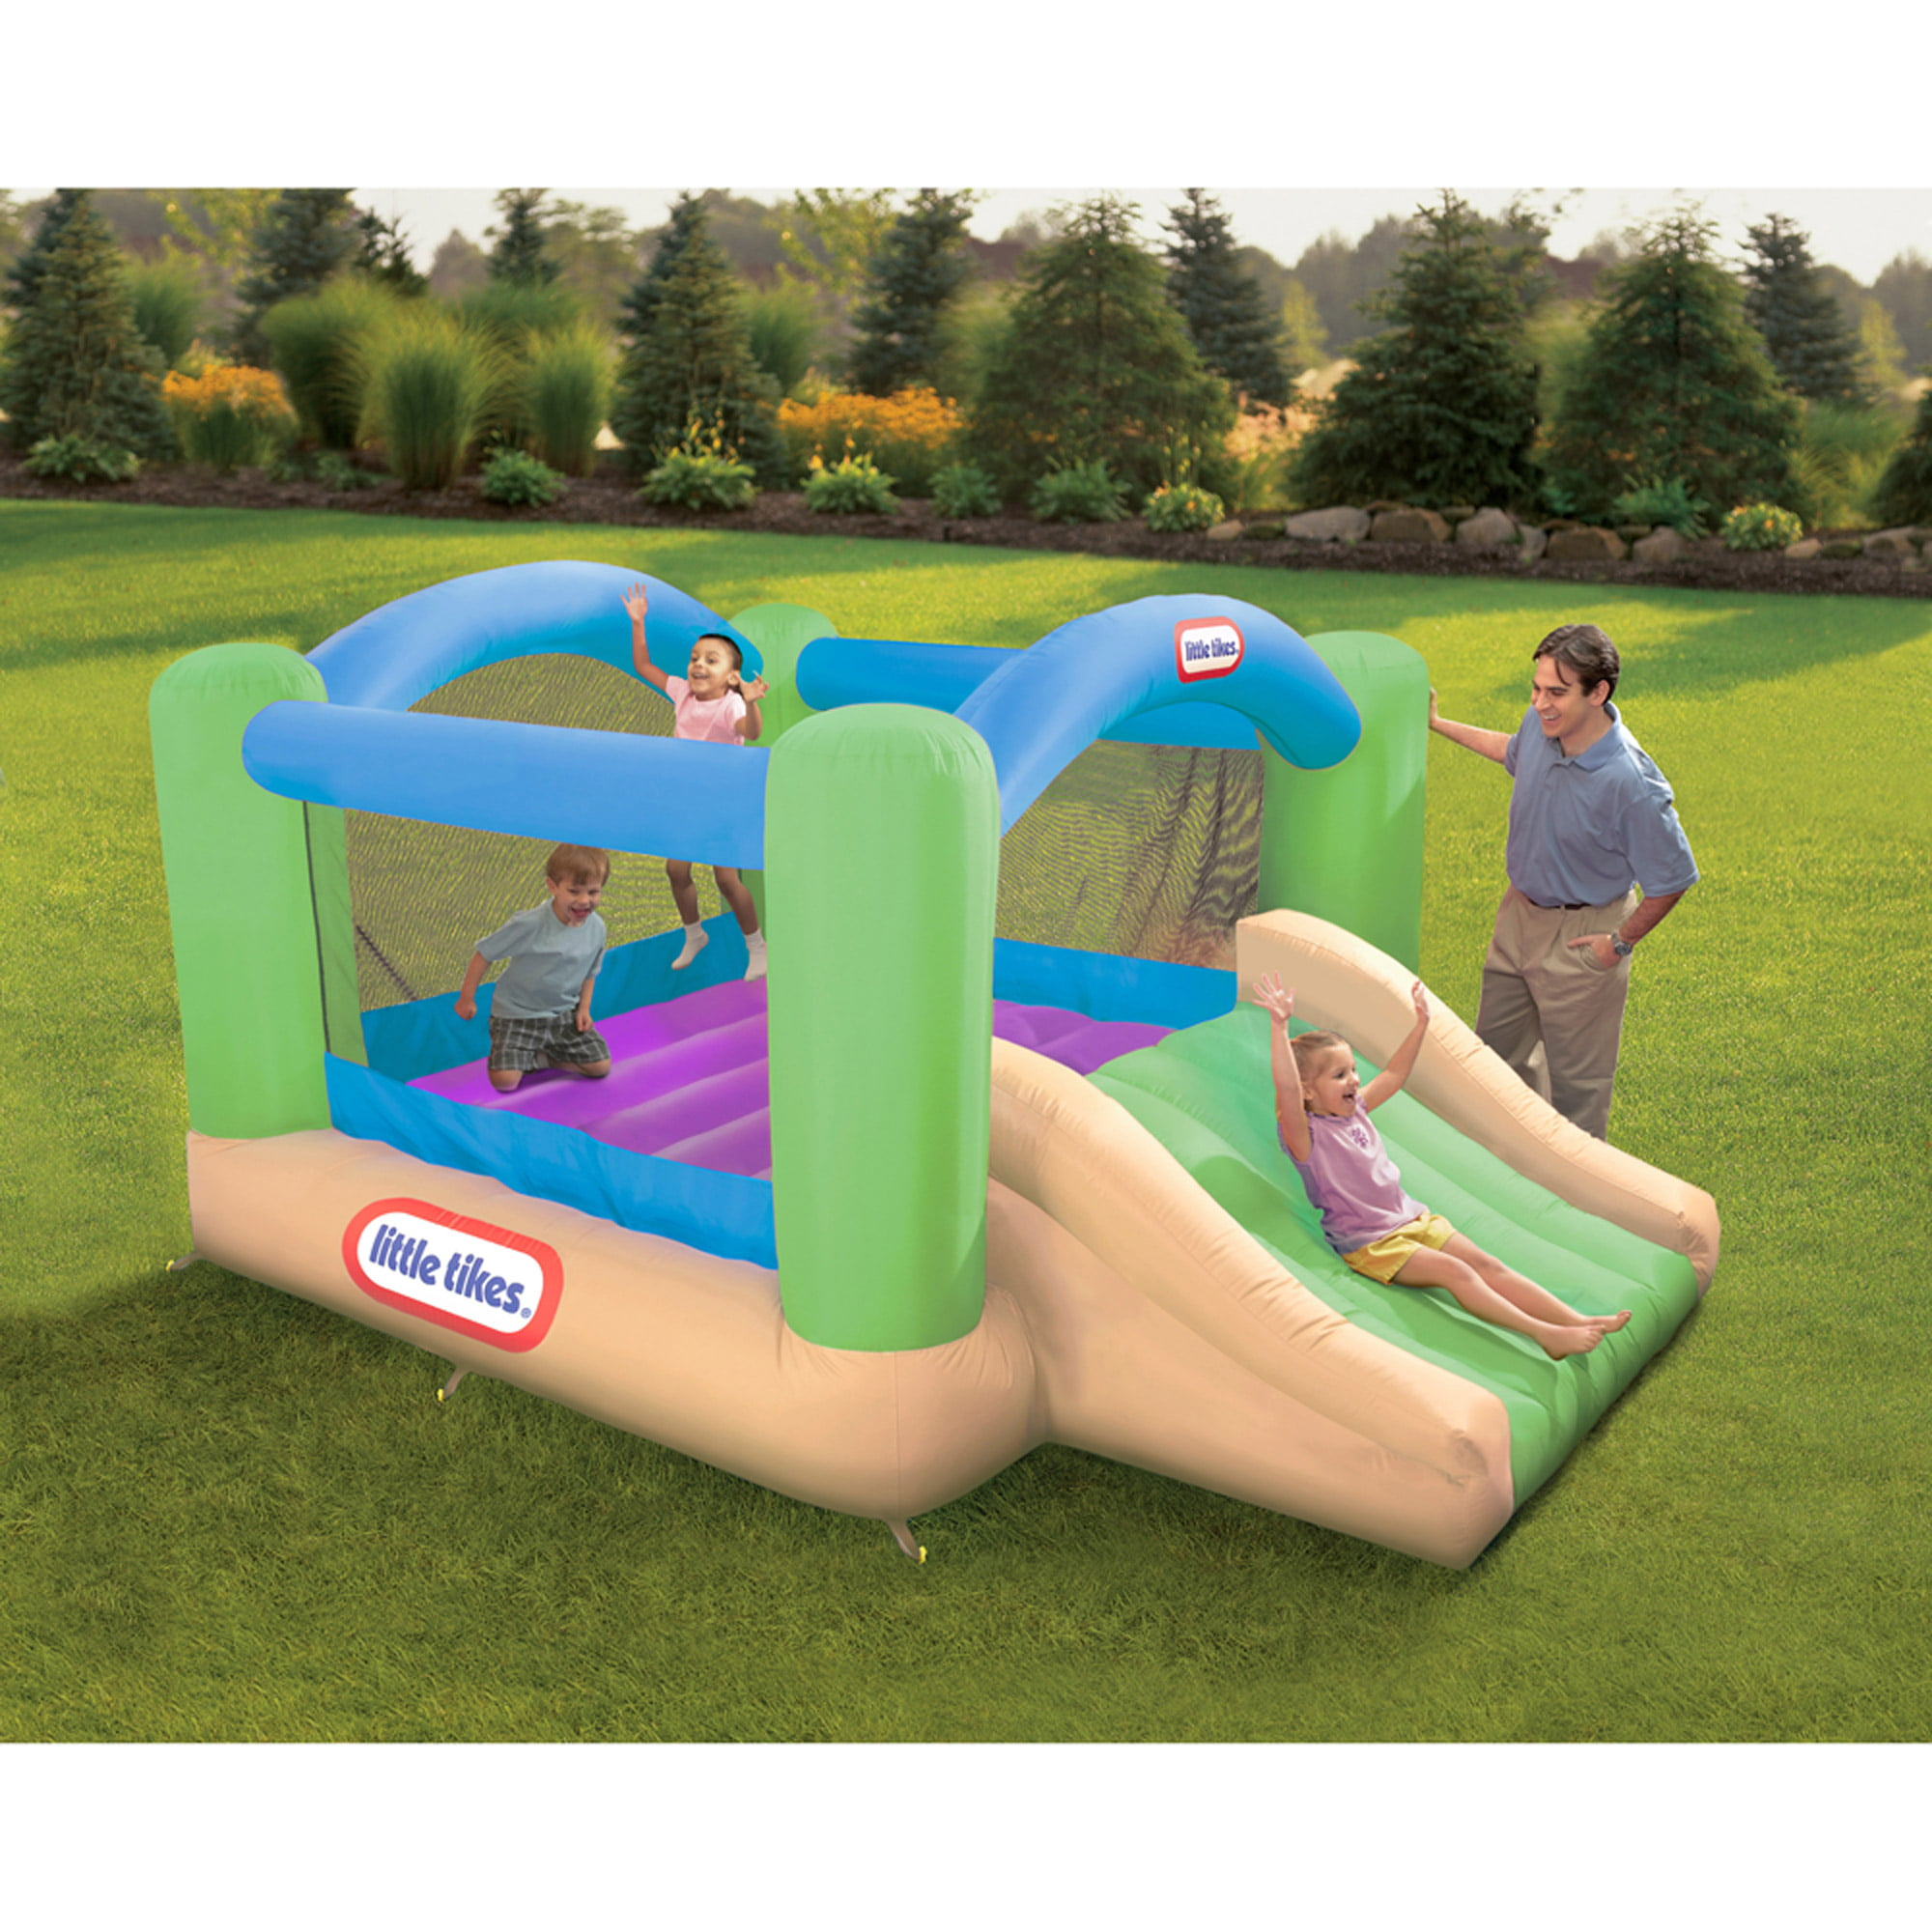 Little Tikes Bounce Houses & Ball Pits